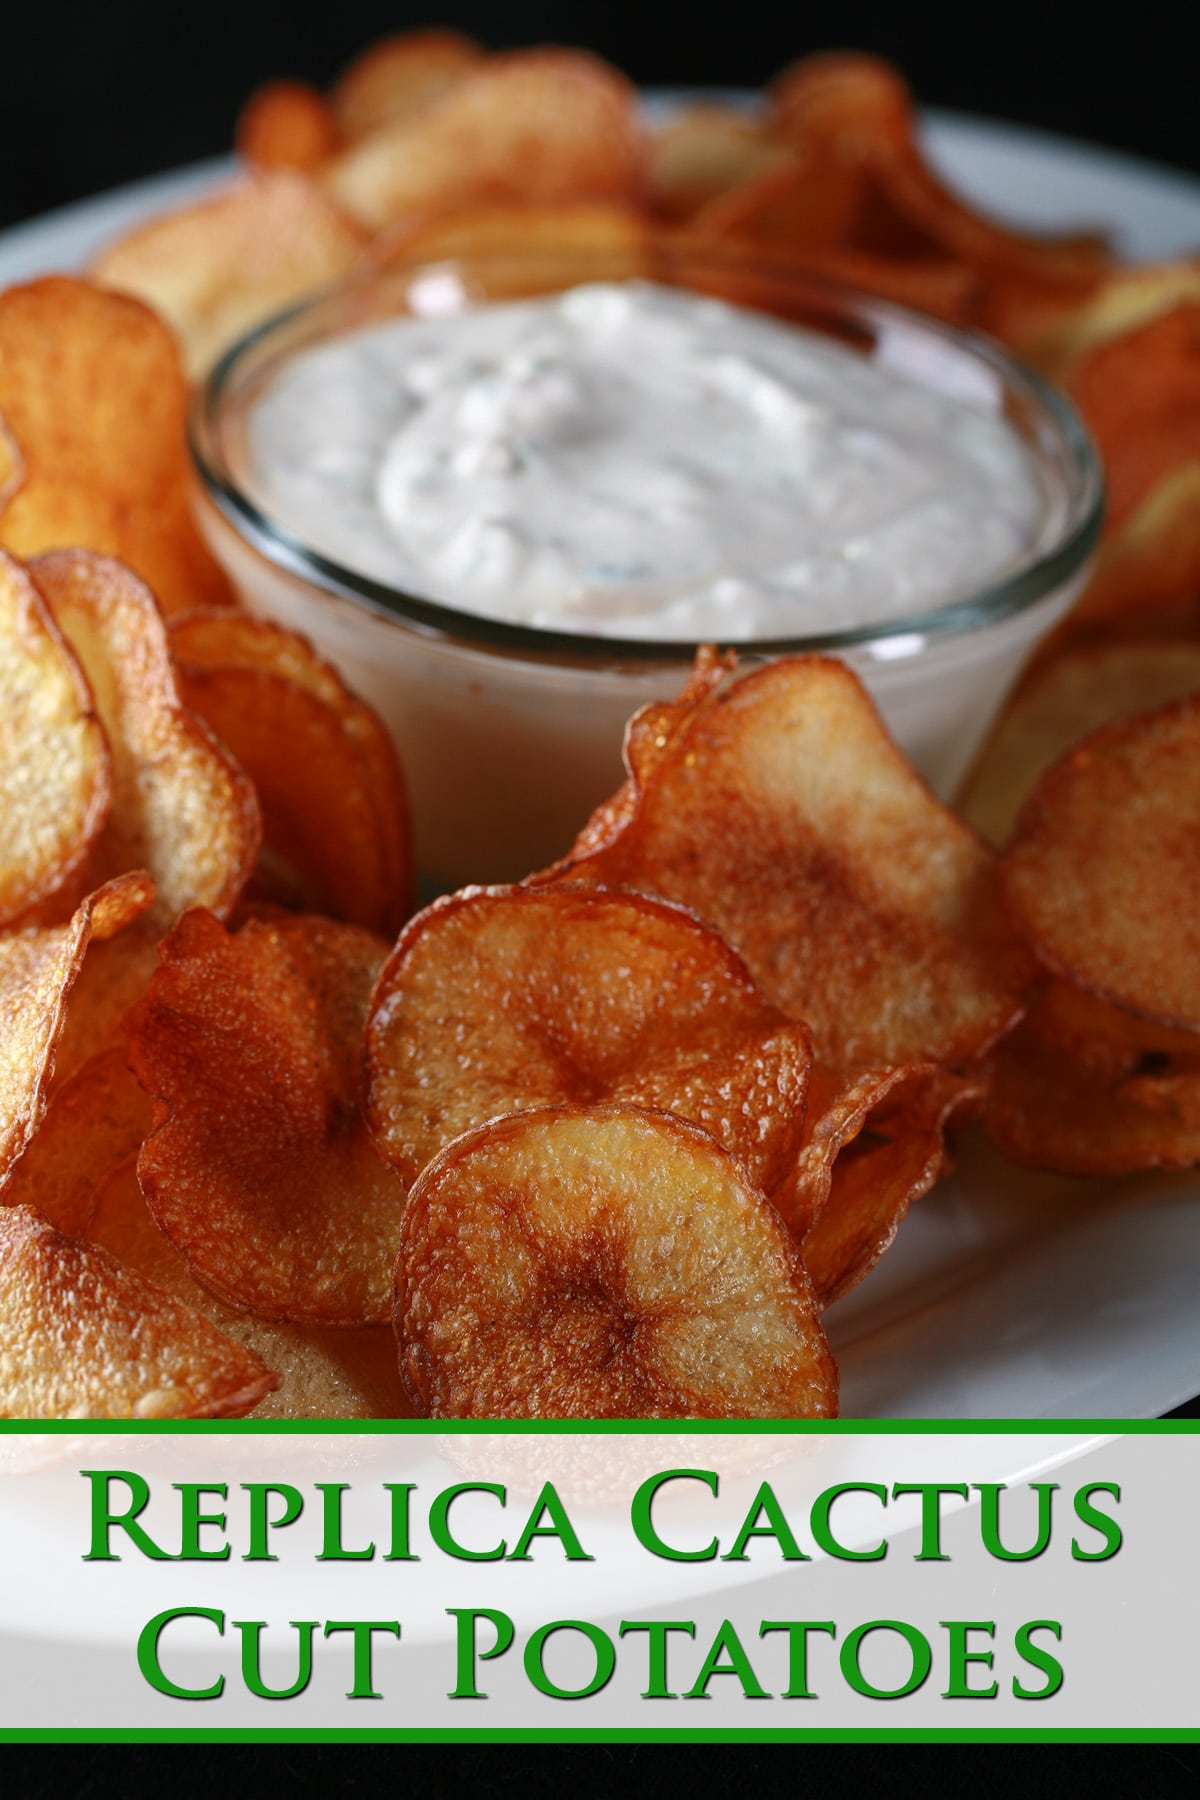 A large platter of fried potato slices, with a bowl of cactus dip. Based on a Boston Pizza appetizer. Green text overlay says Cactus Cut Potatoes